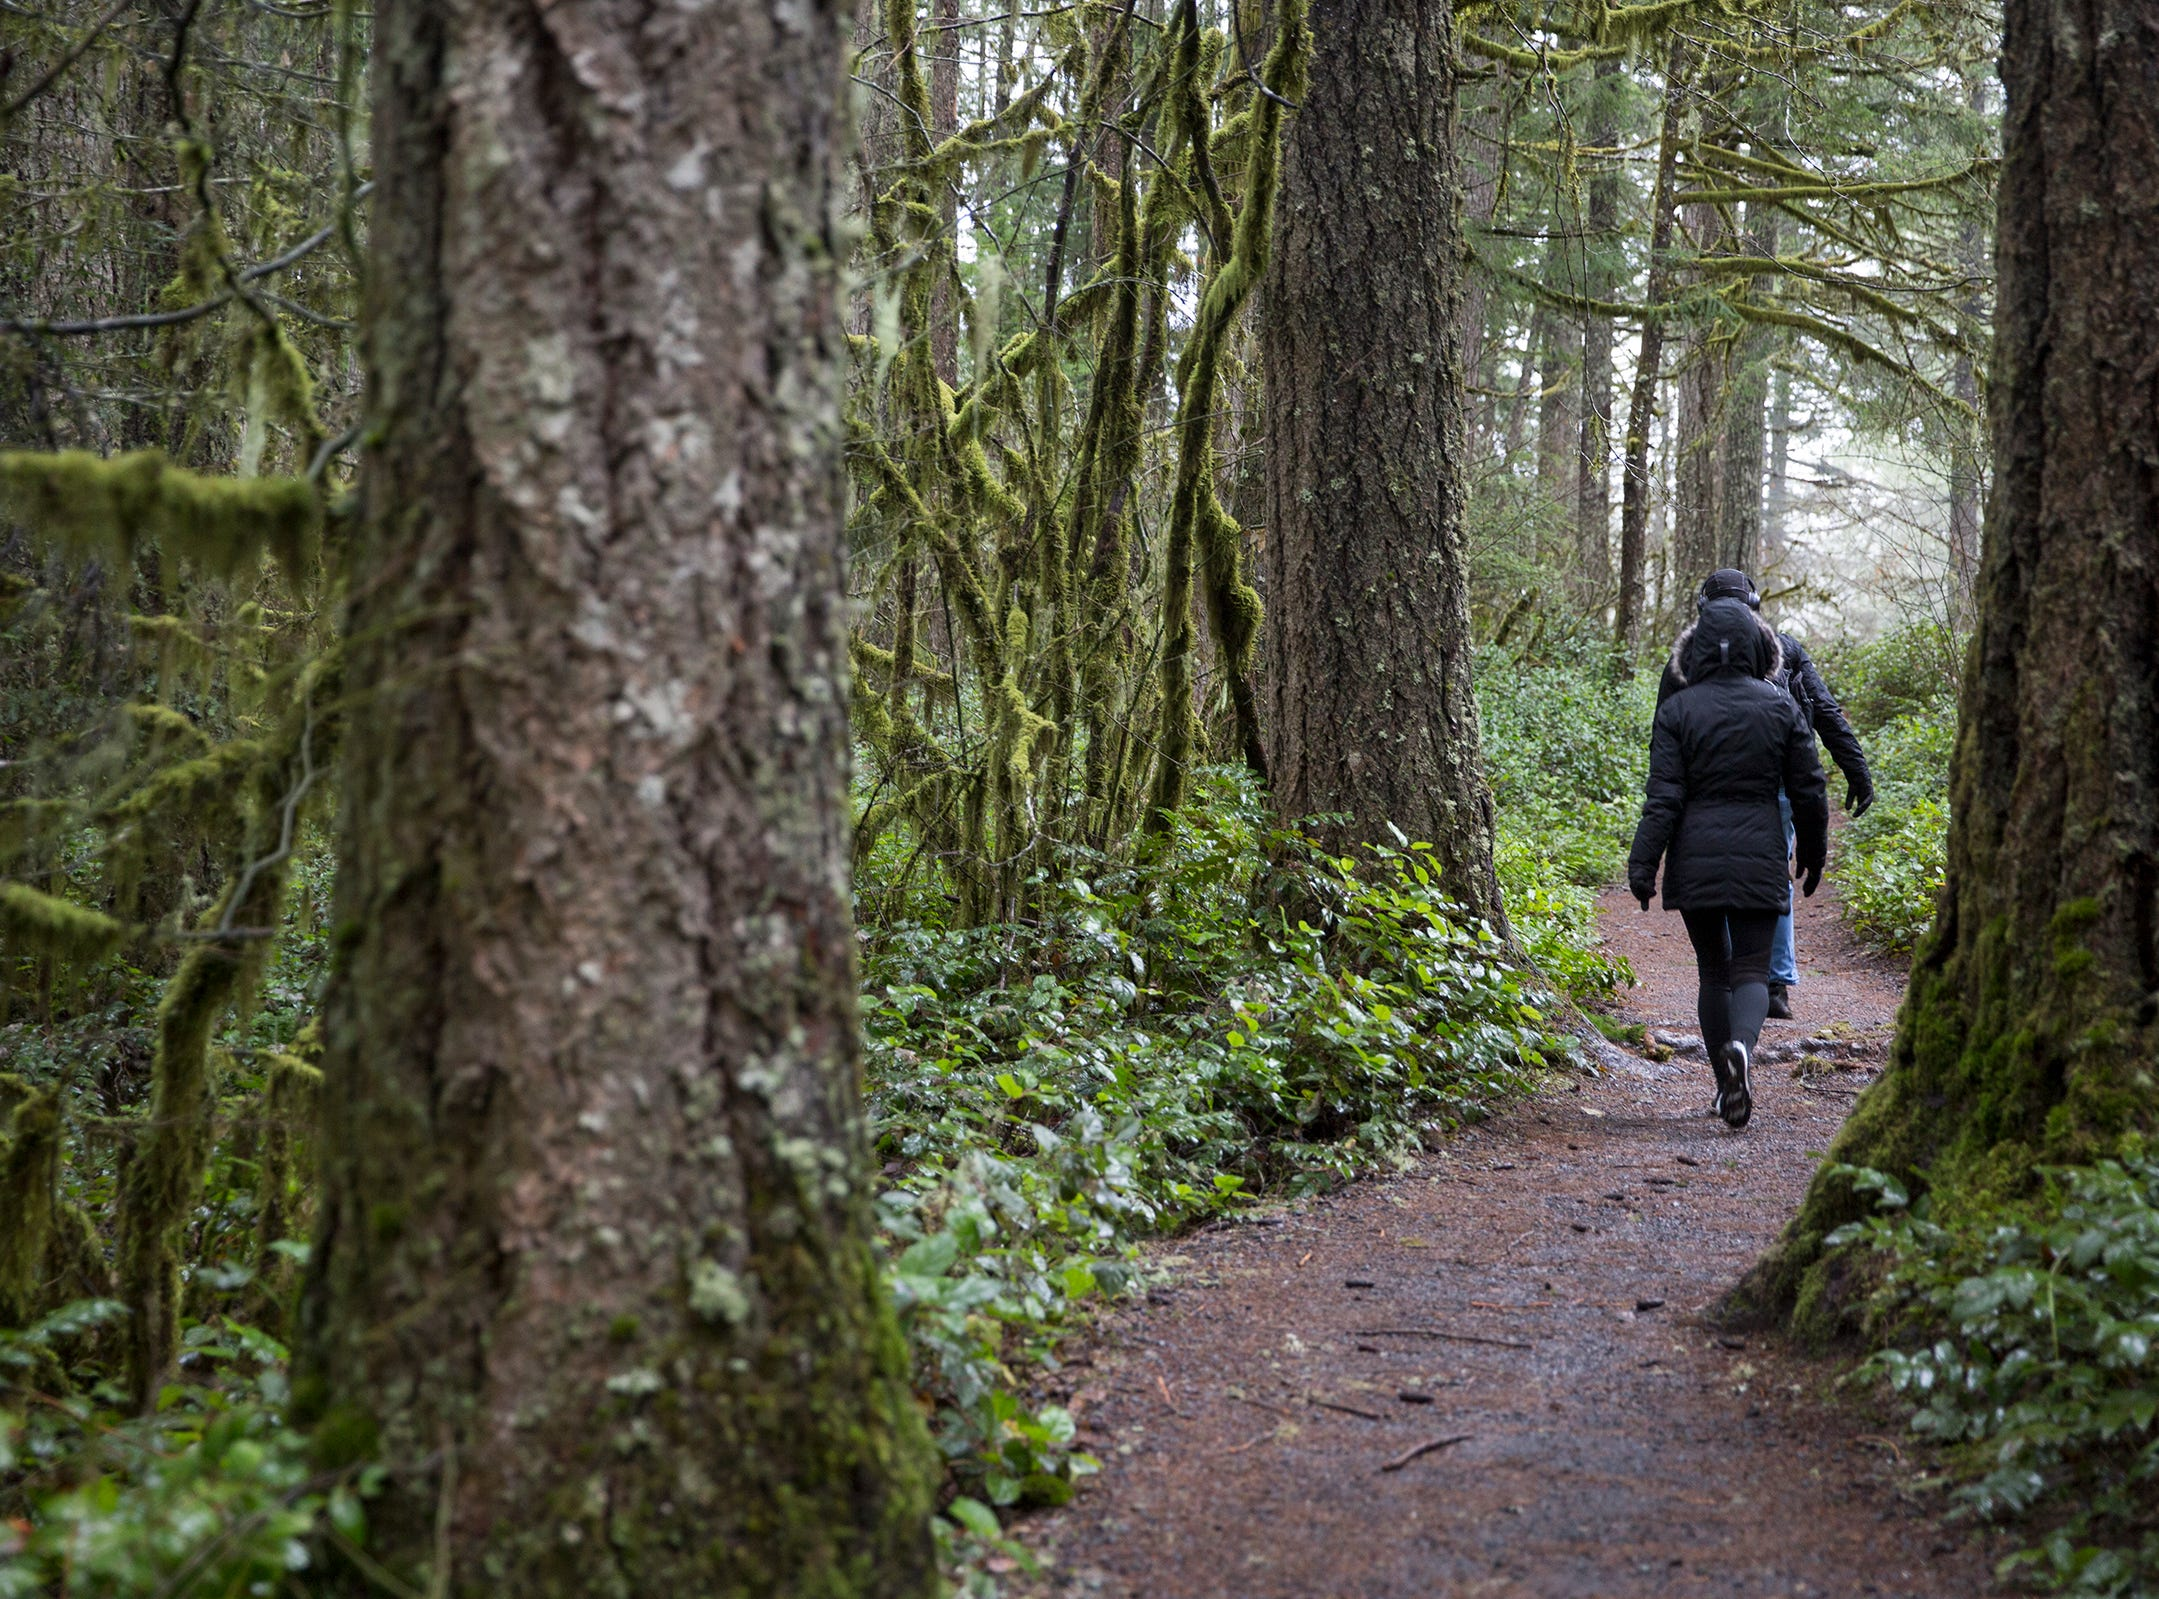 Hikers take the trail at Silver Falls State Park in Sublimity on Wednesday, Dec. 26, 2018.